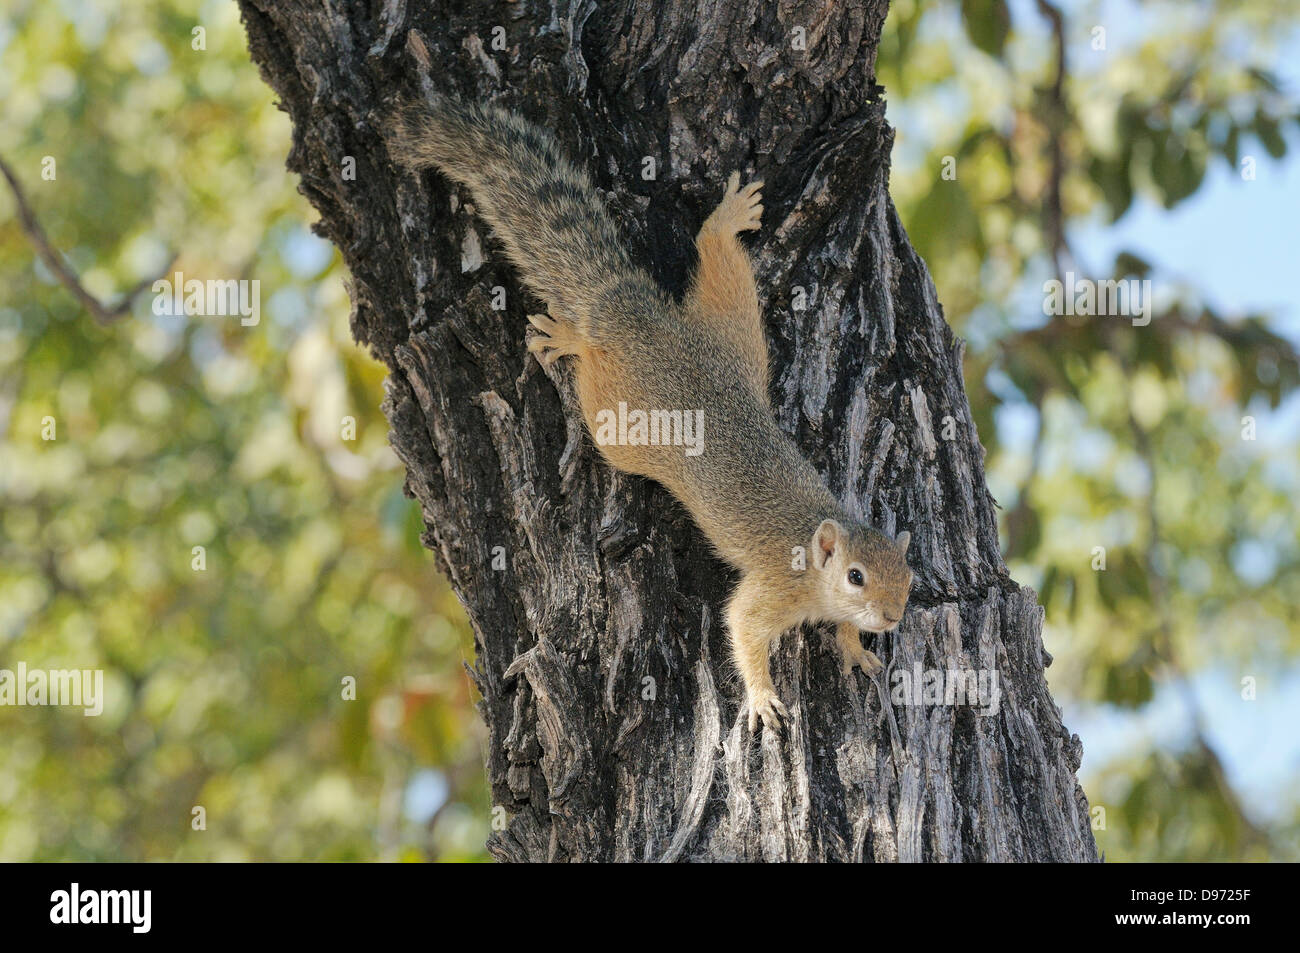 Tree Squirrel (Smith's Bush Squirrel) Paraxerus cepapi Photographed in Etosha National Park, Namibia - Stock Image